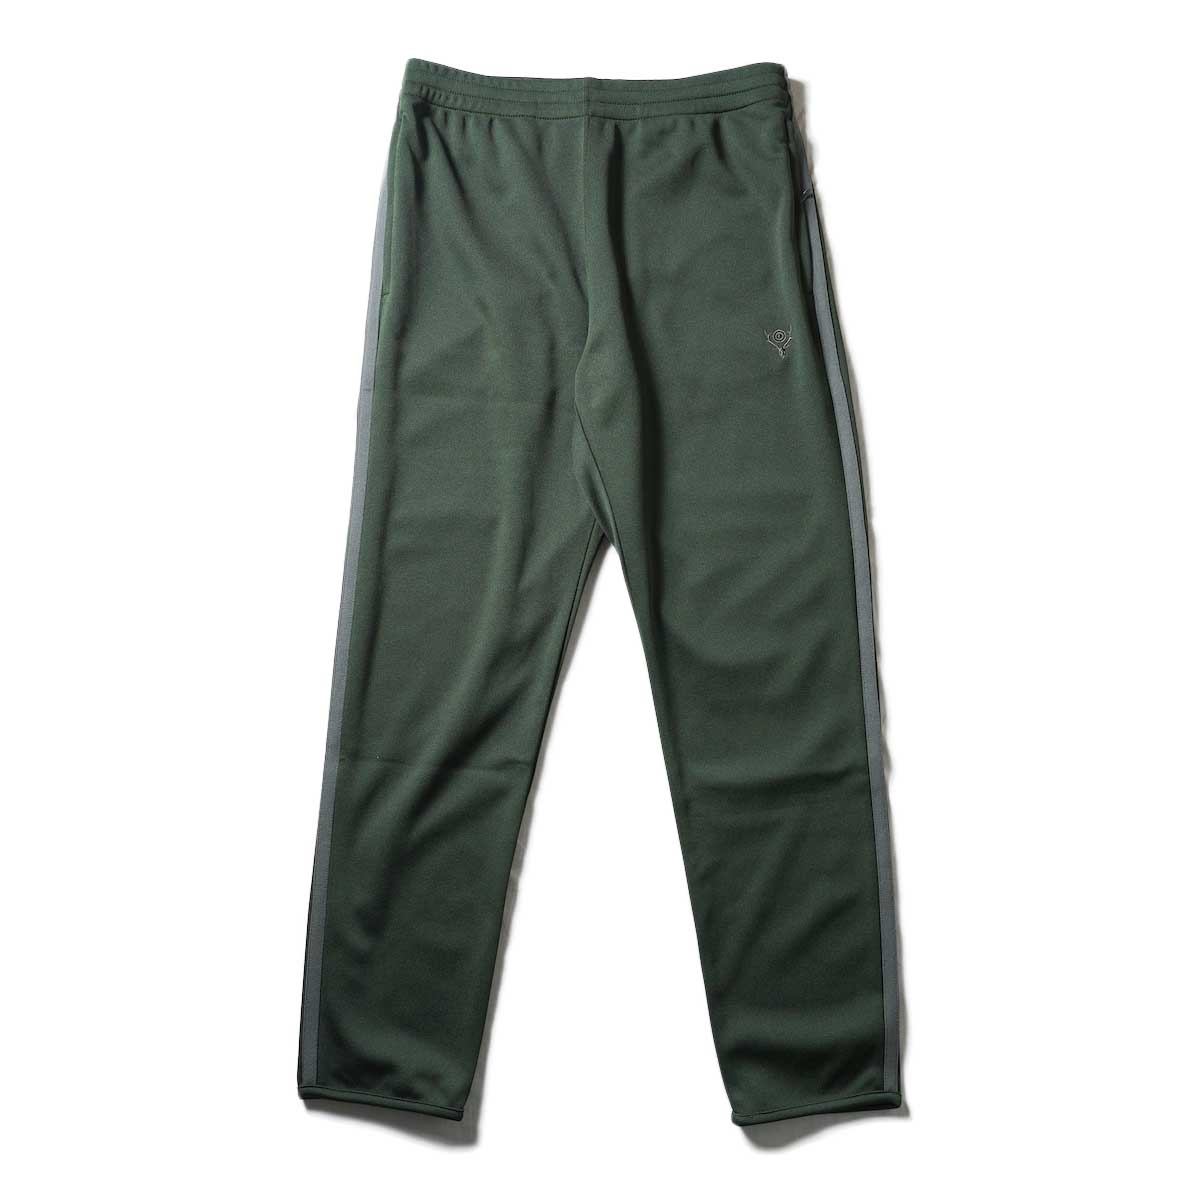 South2 West8 / Trainer Pants - Poly Smooth (Green)